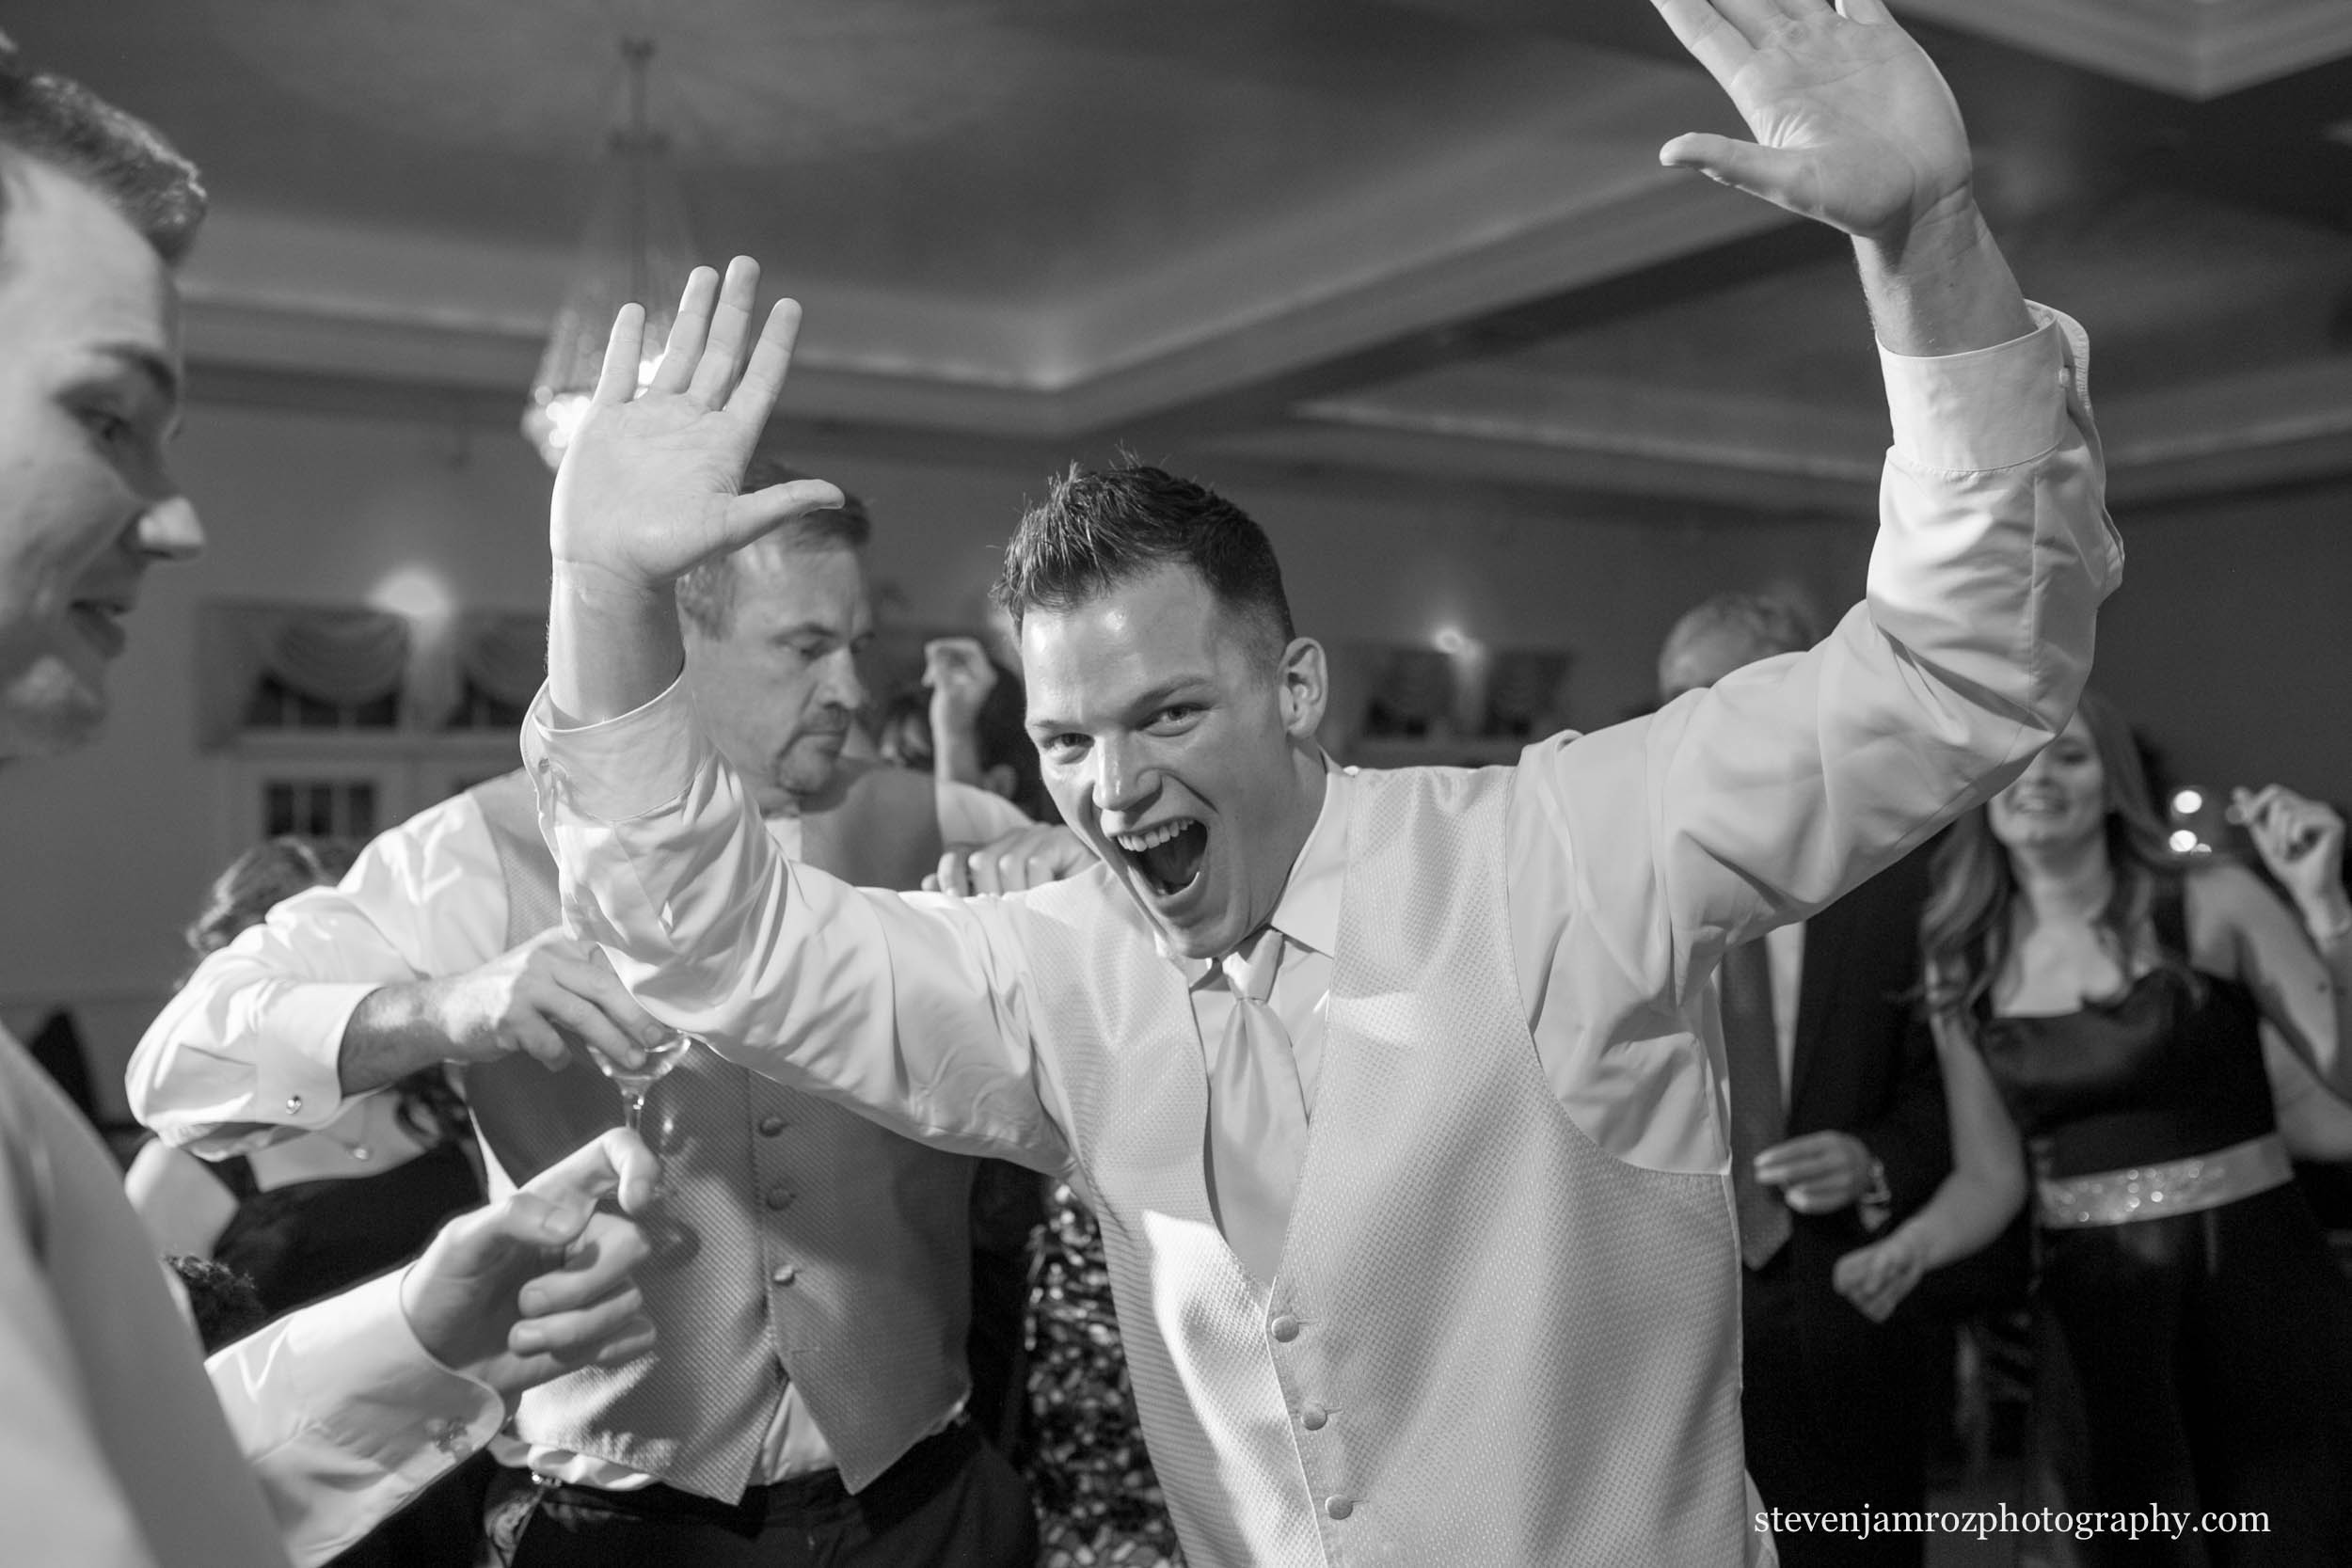 time-of-his-life-wedding-hudson-manor-steven-jamroz-photography-0507.jpg